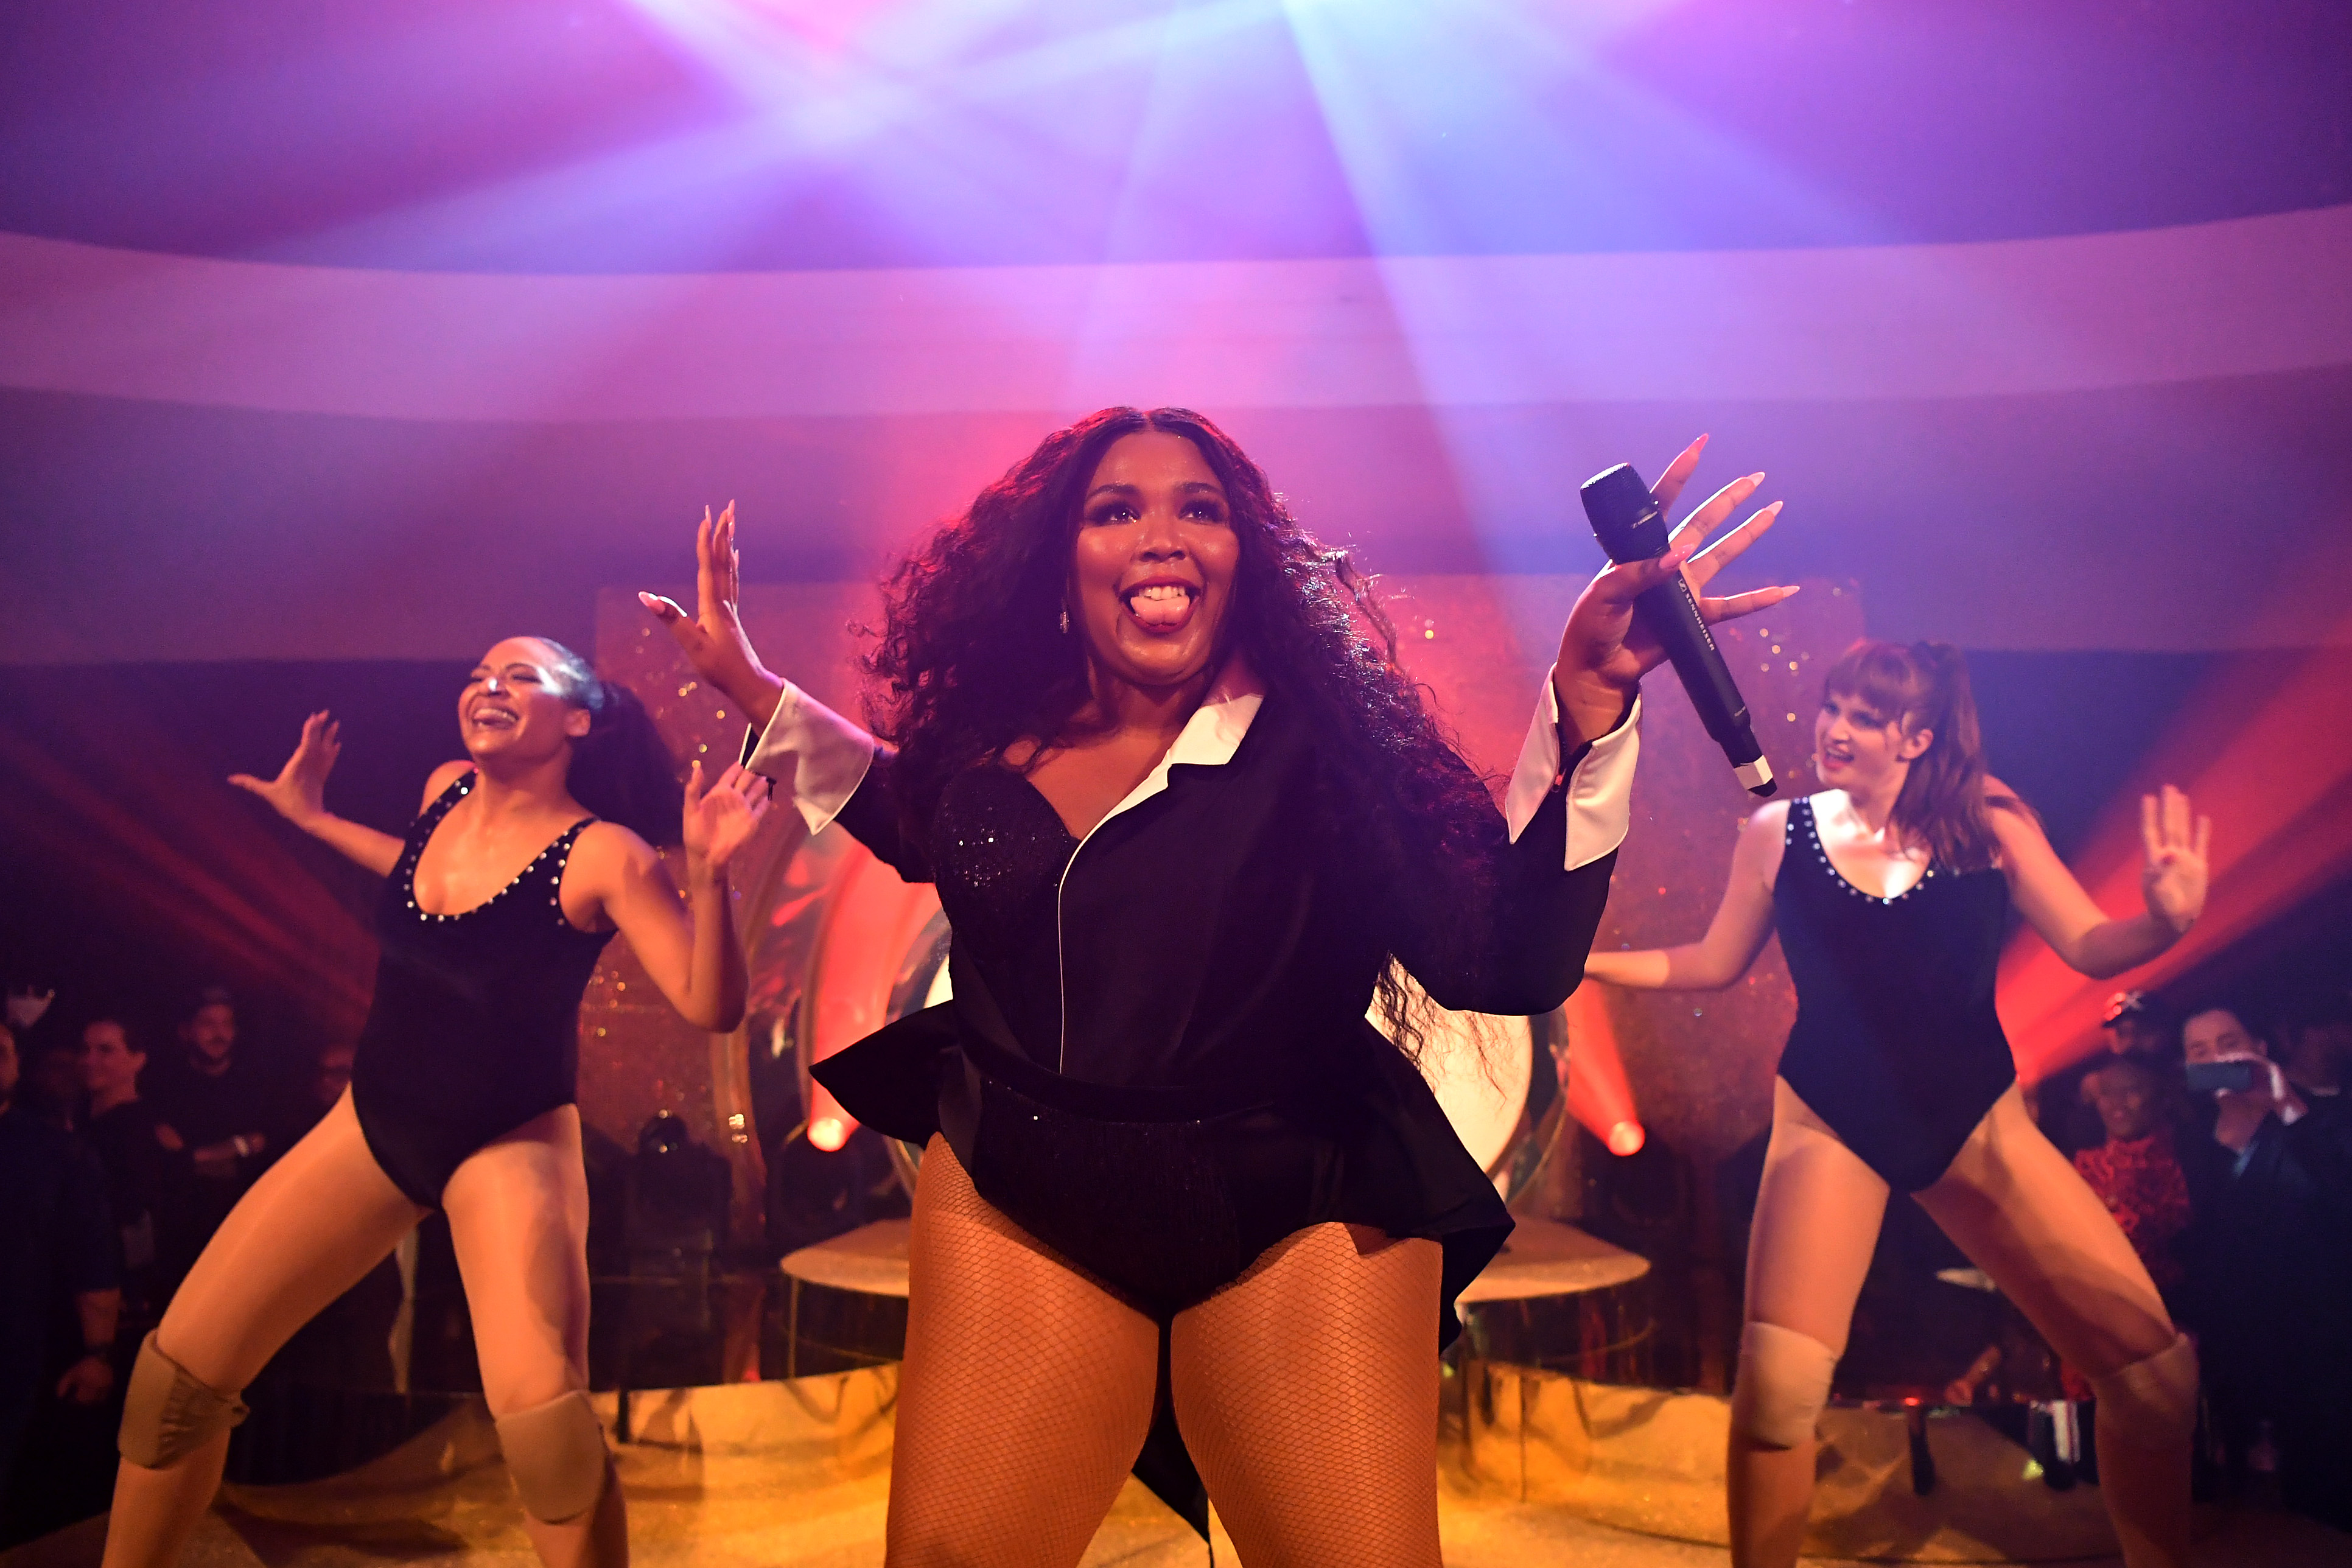 Lizzo, Billie Eilish, and Lil Nas X lead the 2020 Grammy nominees